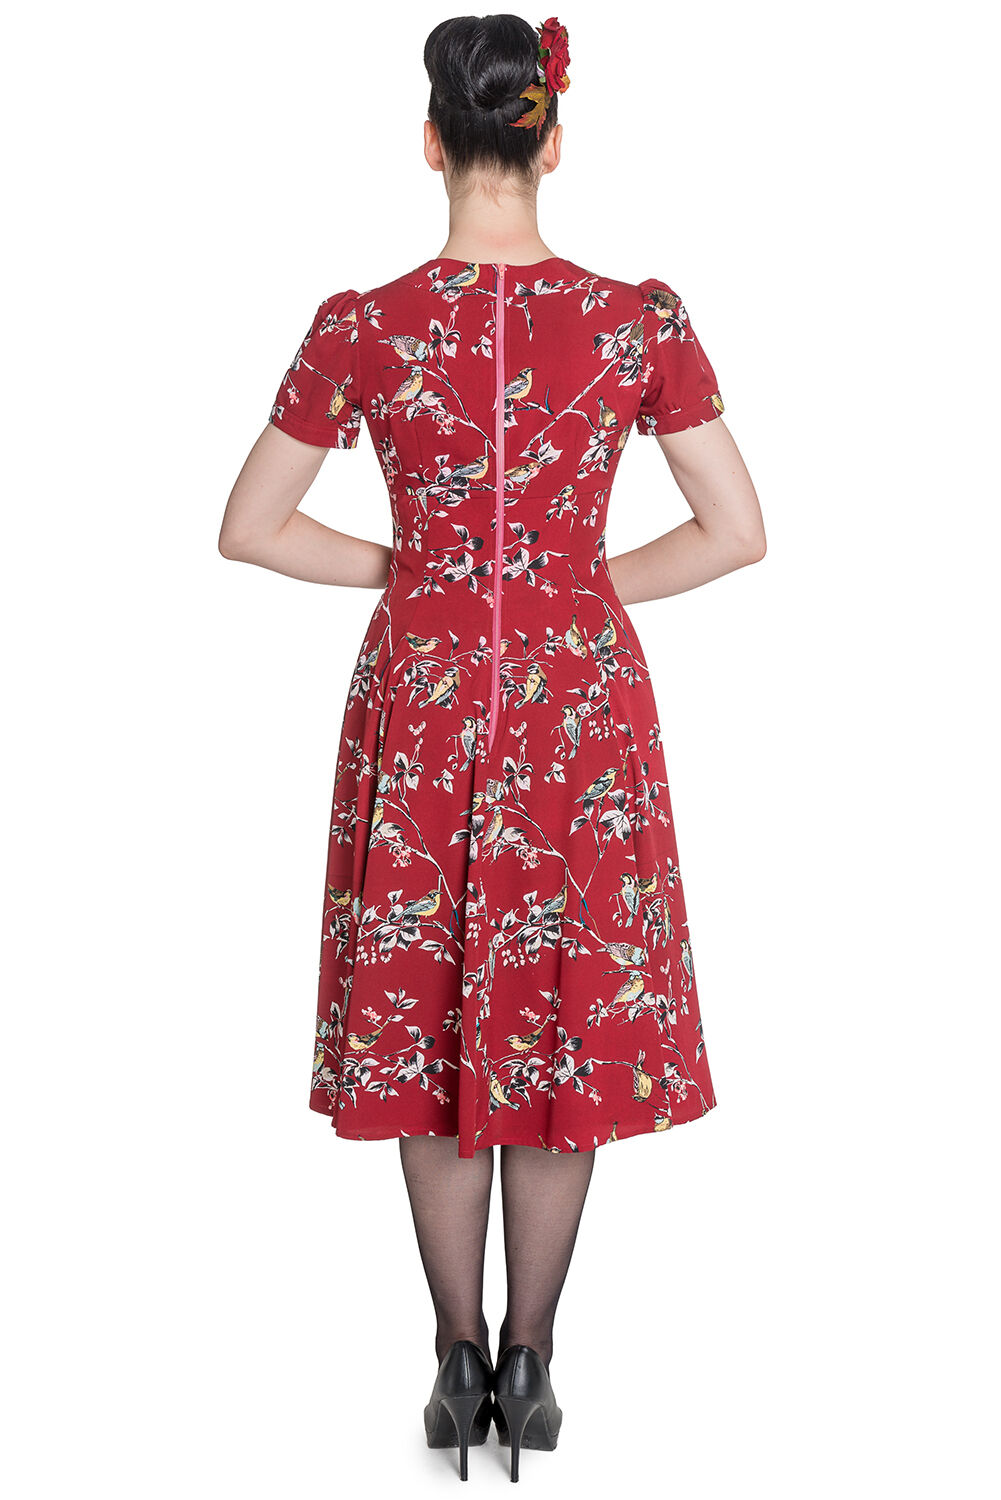 82c1d318d3 Hell Bunny Birdy 40s 50s Tea Party Pin Up Landgirl WW2 Retro Vintage Style  Dress